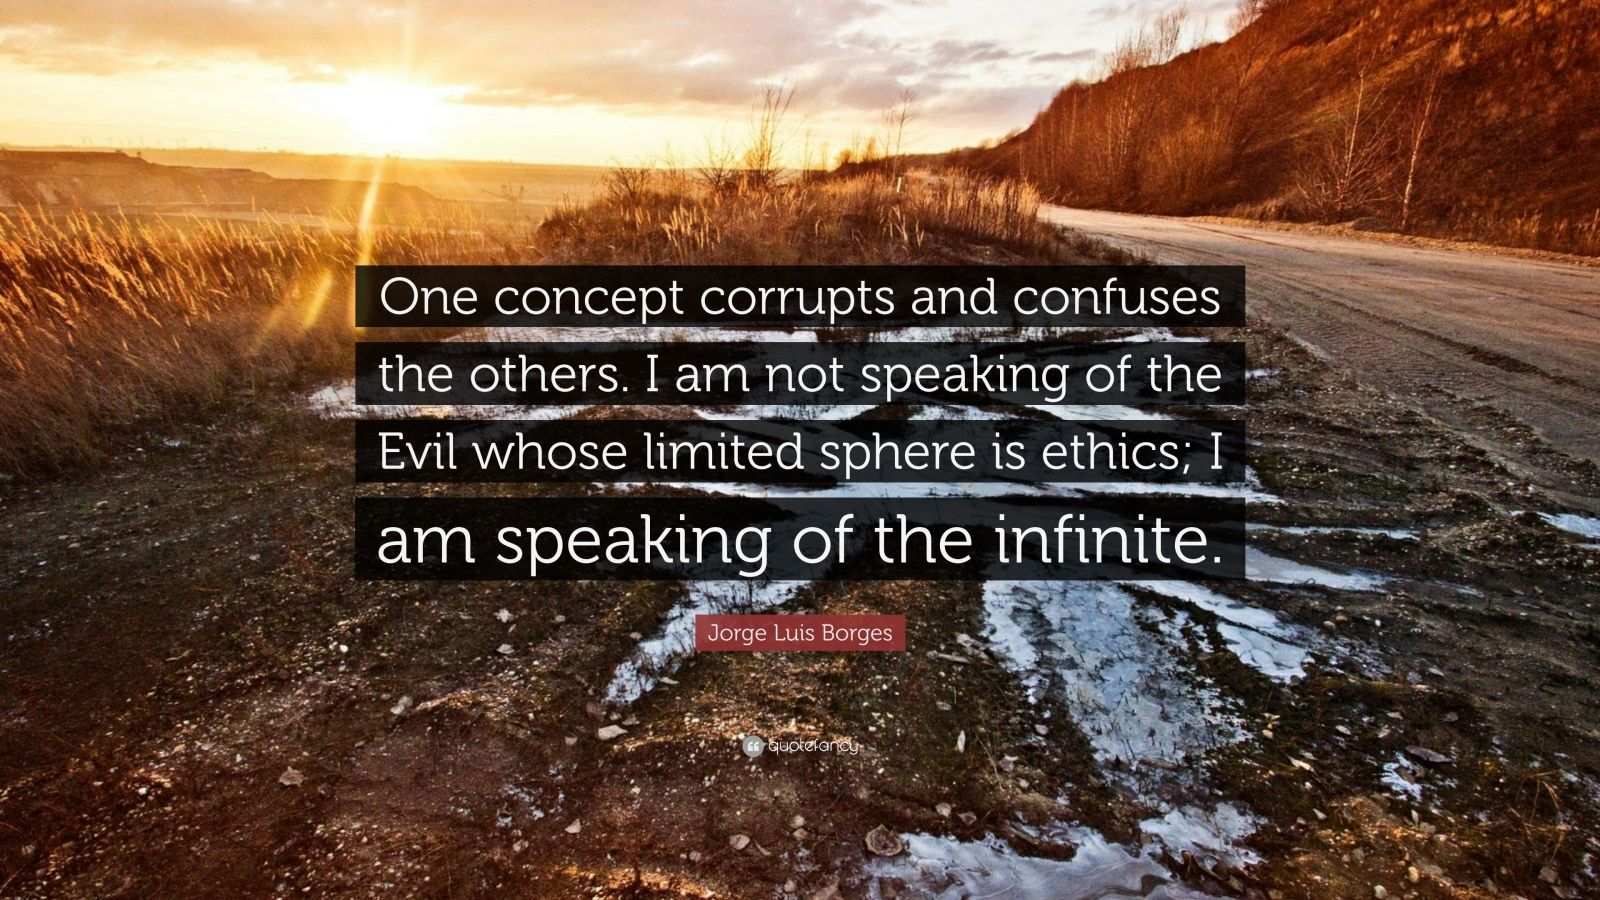 """Jorge Luis Borges Quote: """"One concept corrupts and confuses the others. I am not speaking of the Evil whose limited sphere is ethics; I am speaking of the infinite."""""""